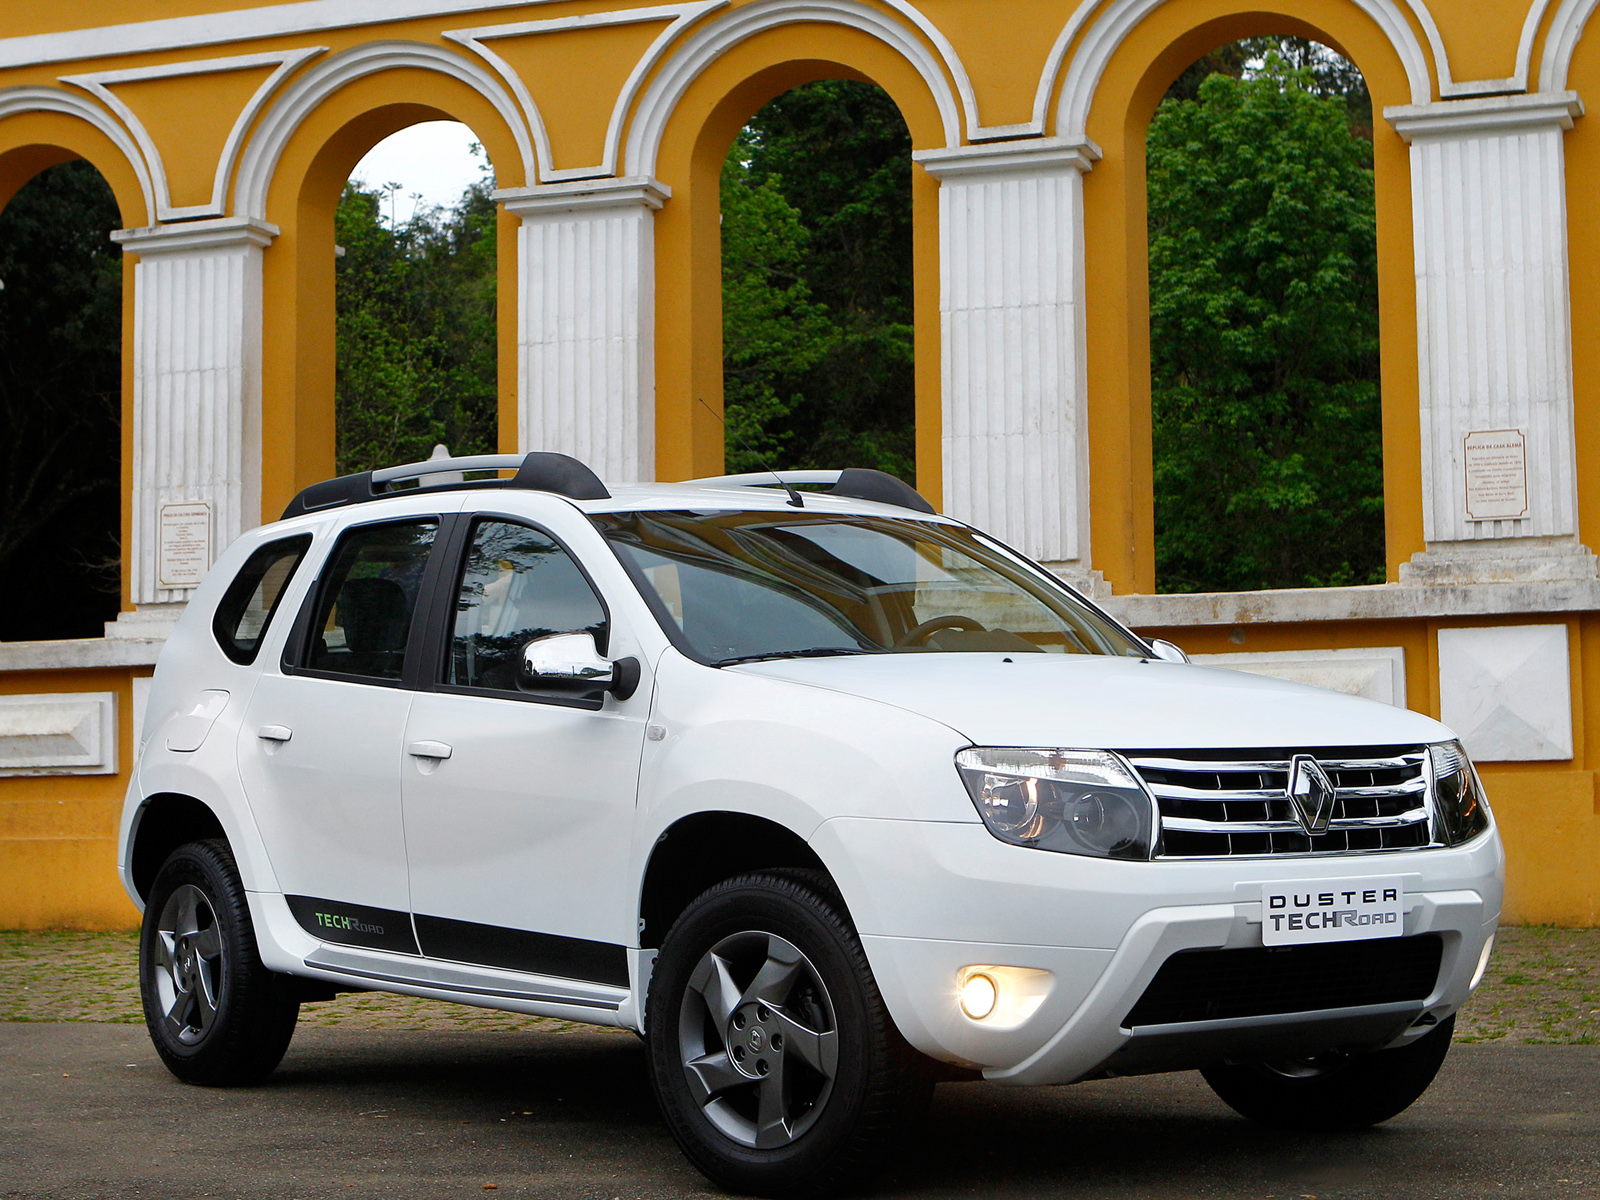 Renault duster photos photogallery with 15 pics carsbase new renault duster pictures voltagebd Images